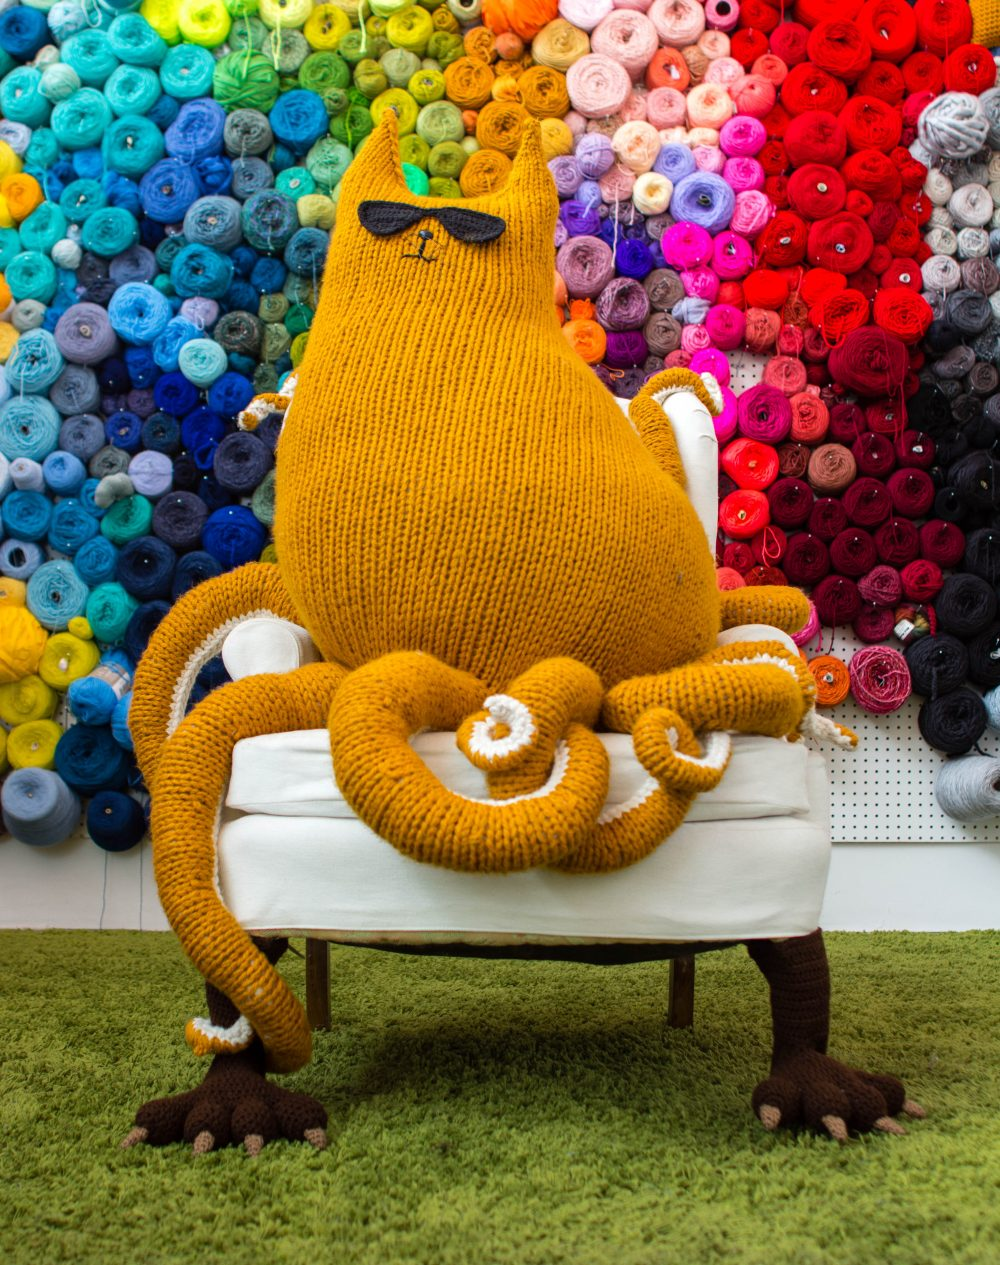 Knits for Life Monster Feet Yarn Bomb Crochet Pattern CC BY-ND 4.0